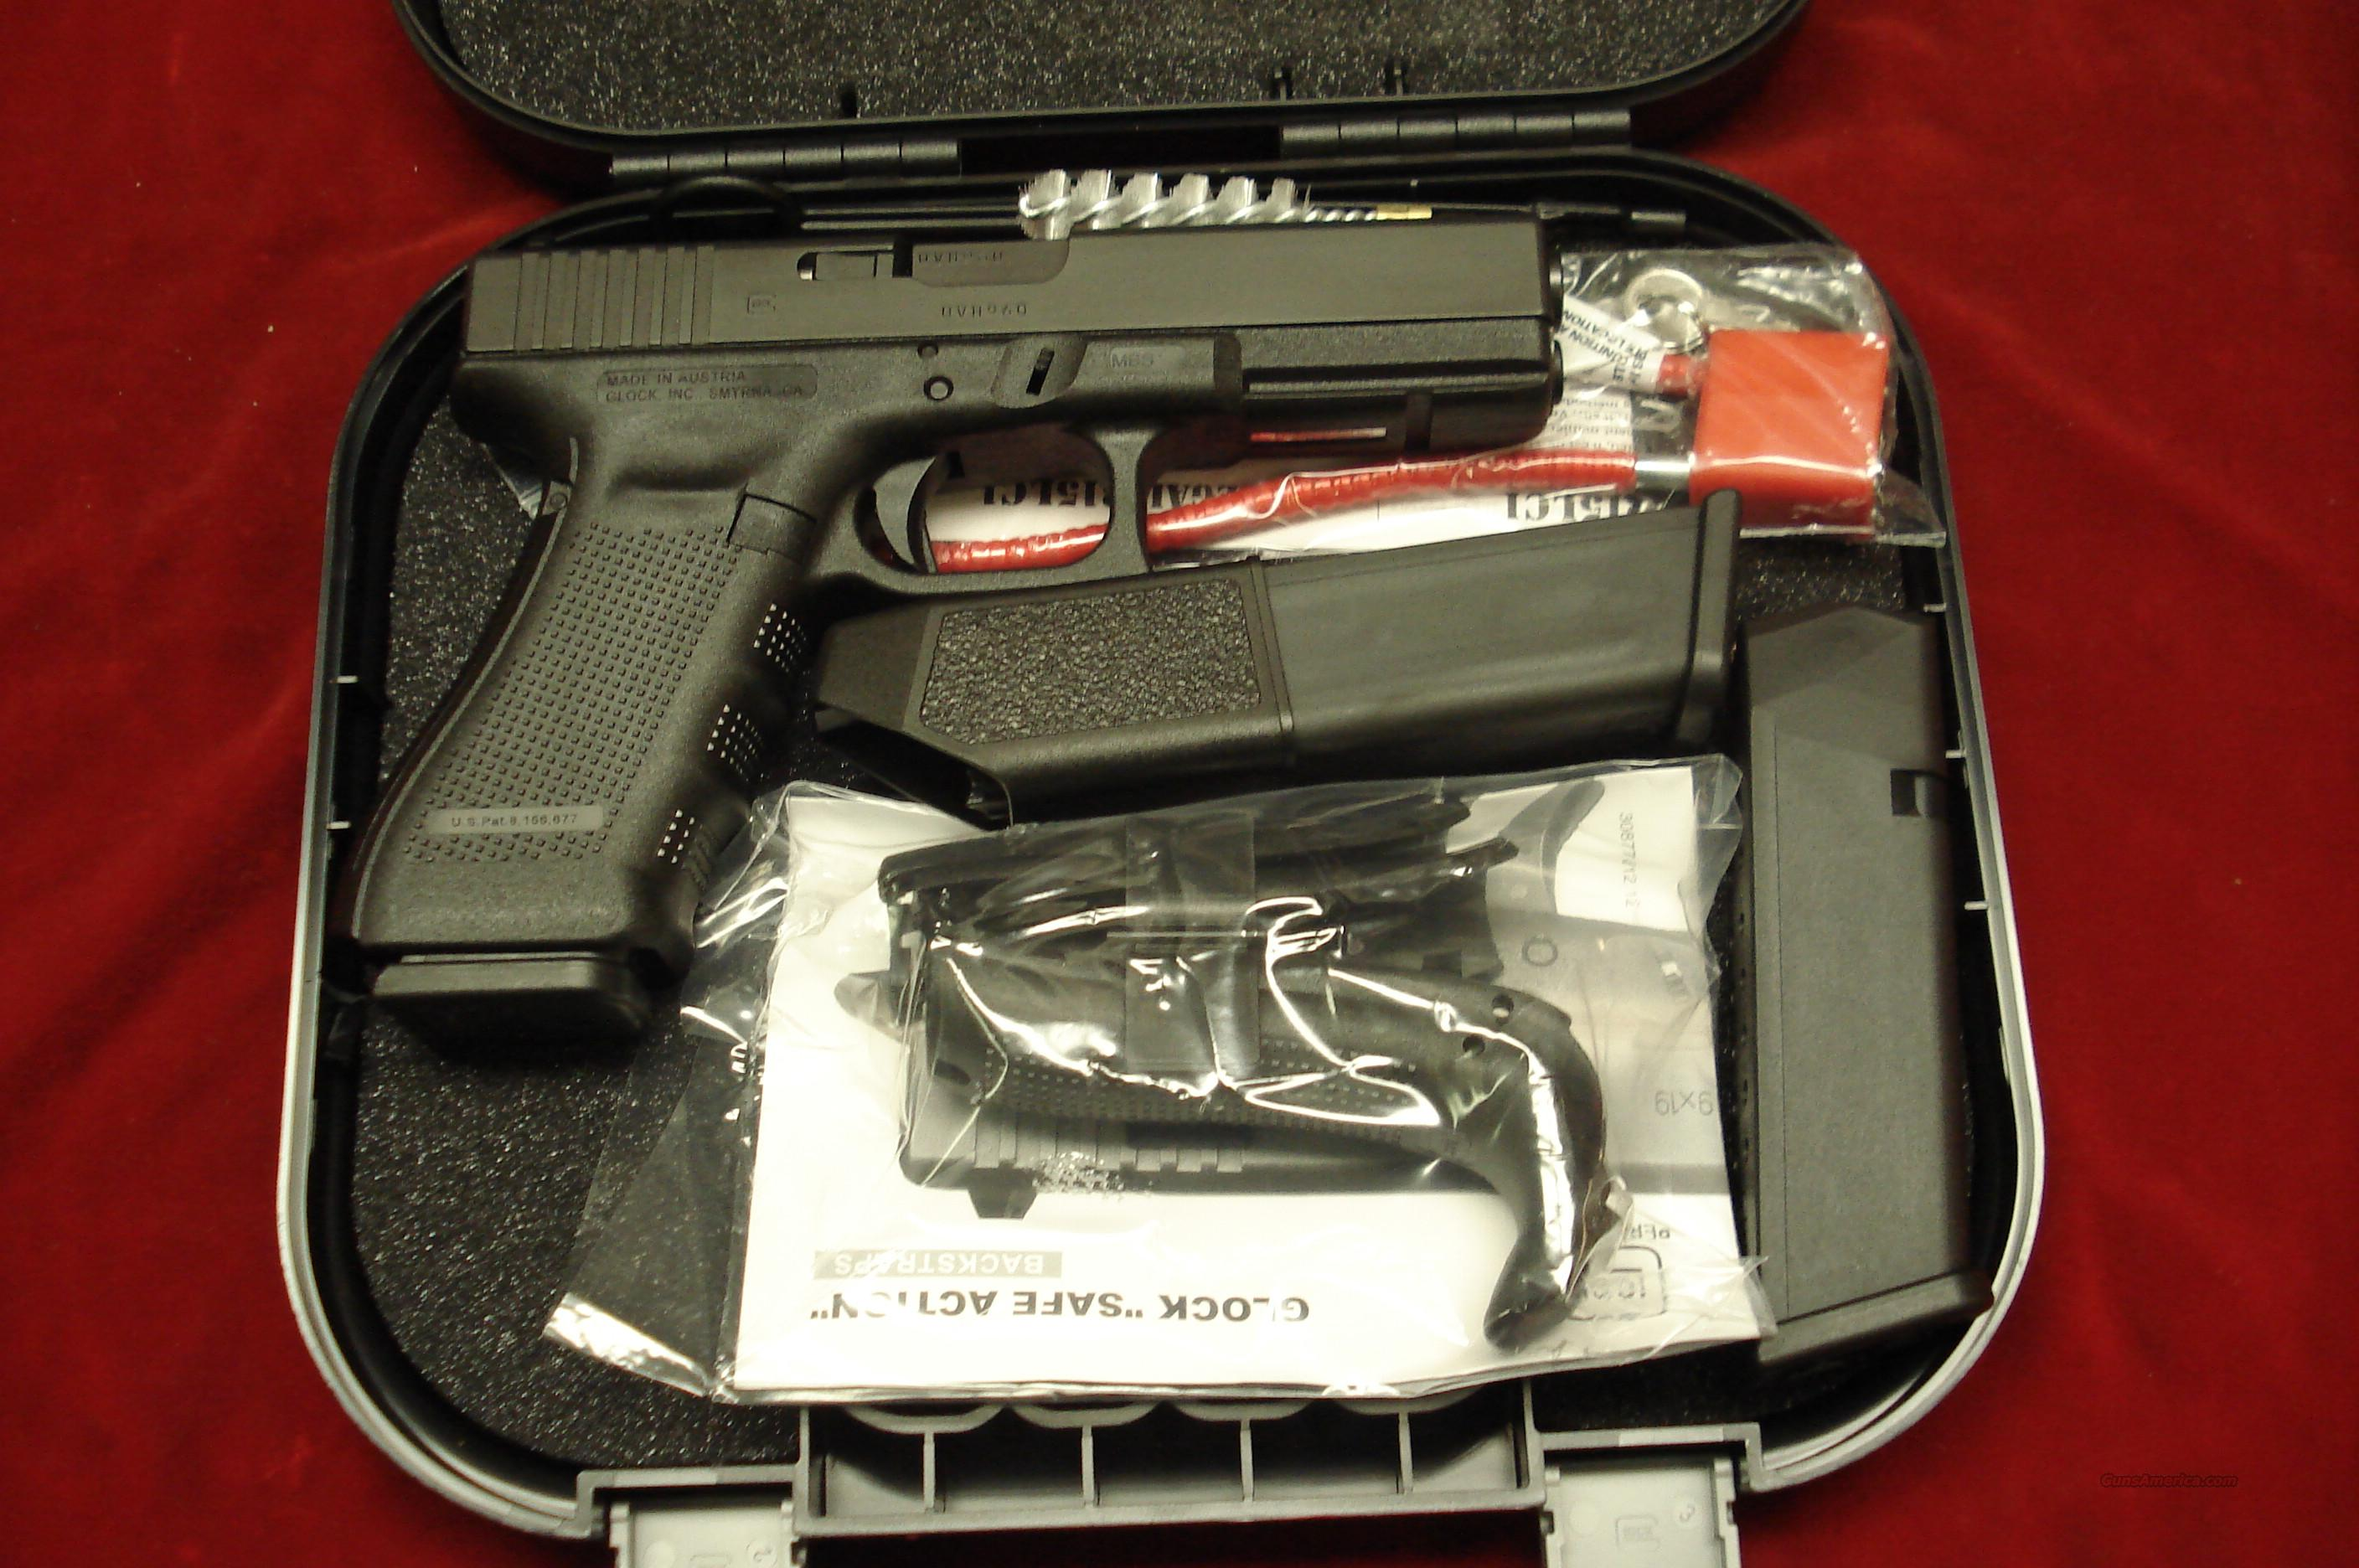 GLOCK MODEL 17 GENERATION 4 9MM WITH 3 HIGH CAPACITY MAGAZINES NEW   Guns > Pistols > Glock Pistols > 17